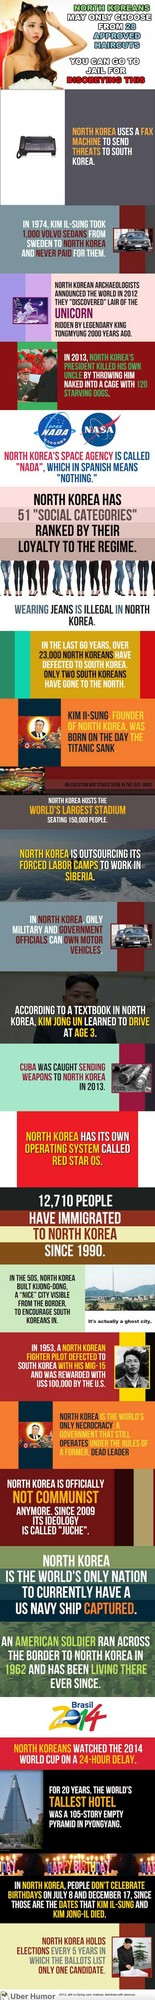 Some Fun Facts about North Korea